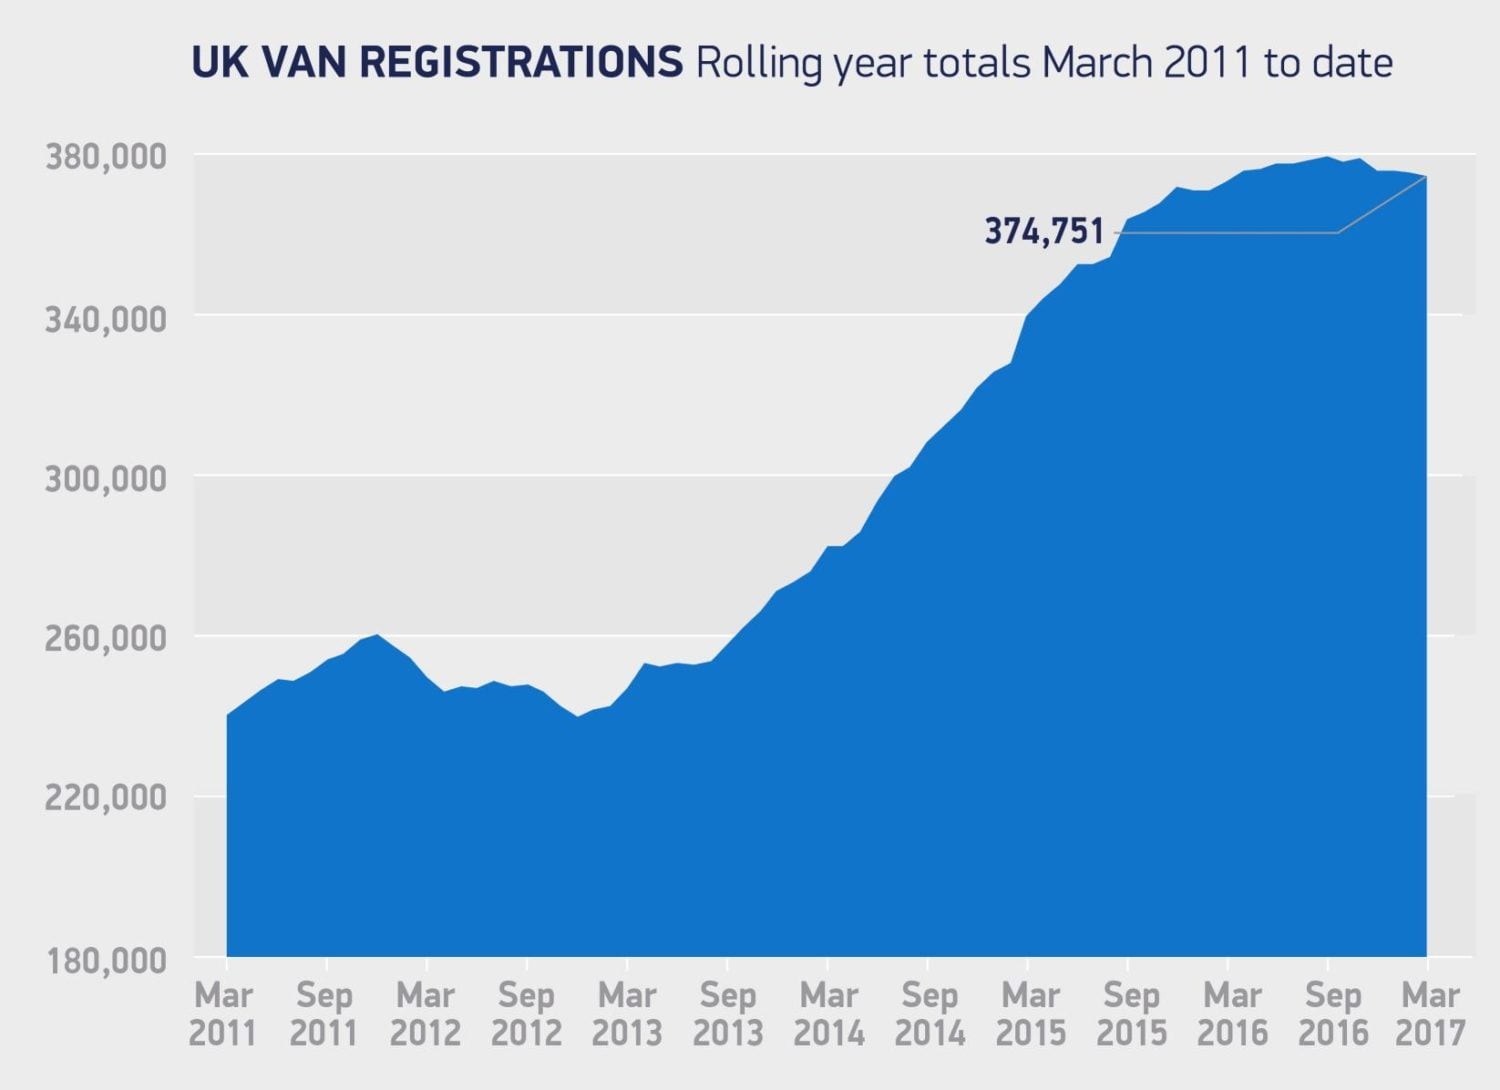 Graph showing UK van registrations from March 2011 - March 2017